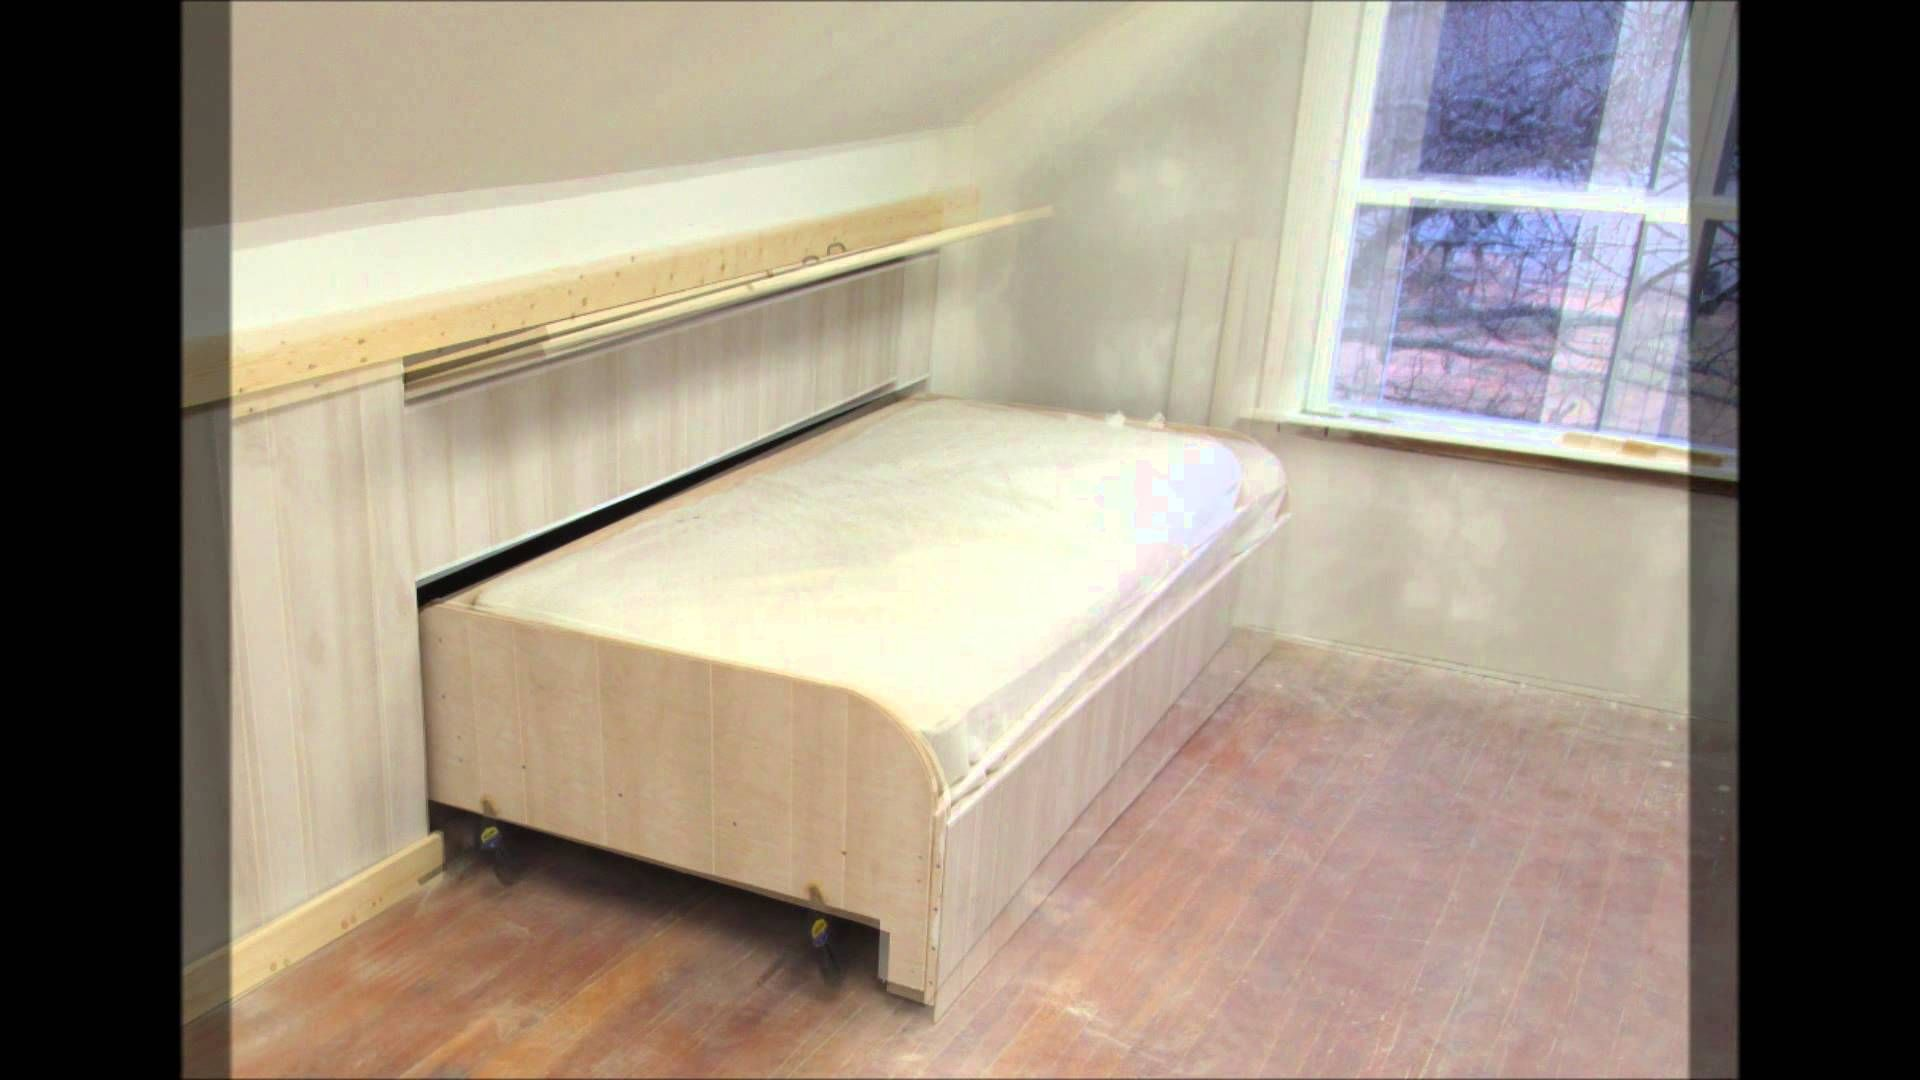 This Pull Out Bed That Tucks Into The Wall Where Roof Pitch Gets Short Is An Excellent Way To Recapture Some Of Unused E